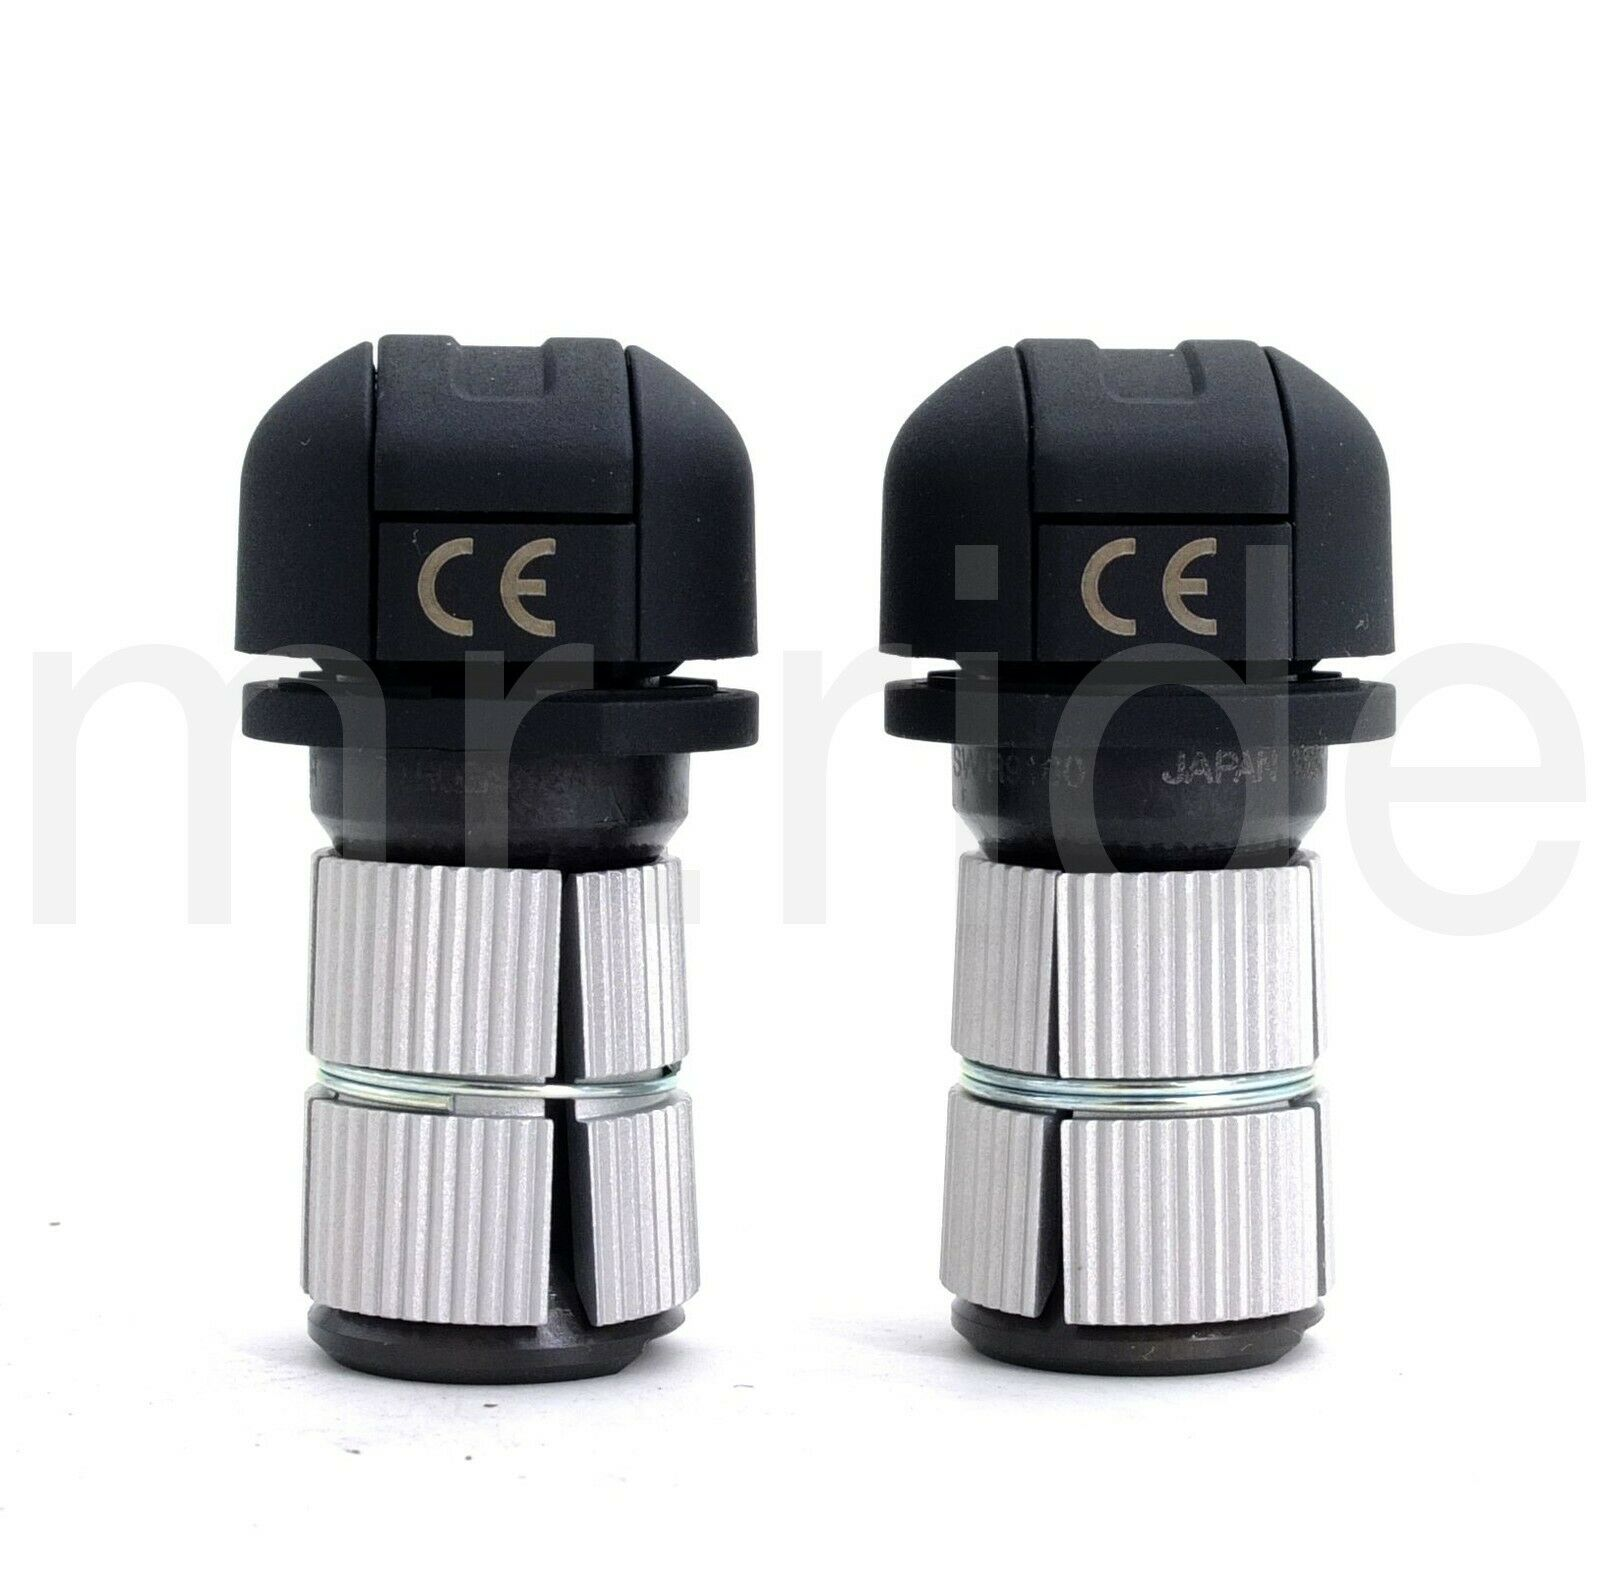 Shimano Dura Ace SW-R9160 Di2 Remote Triathlon TT  Bar End Shifters-E-Tube (Pair)  new products novelty items